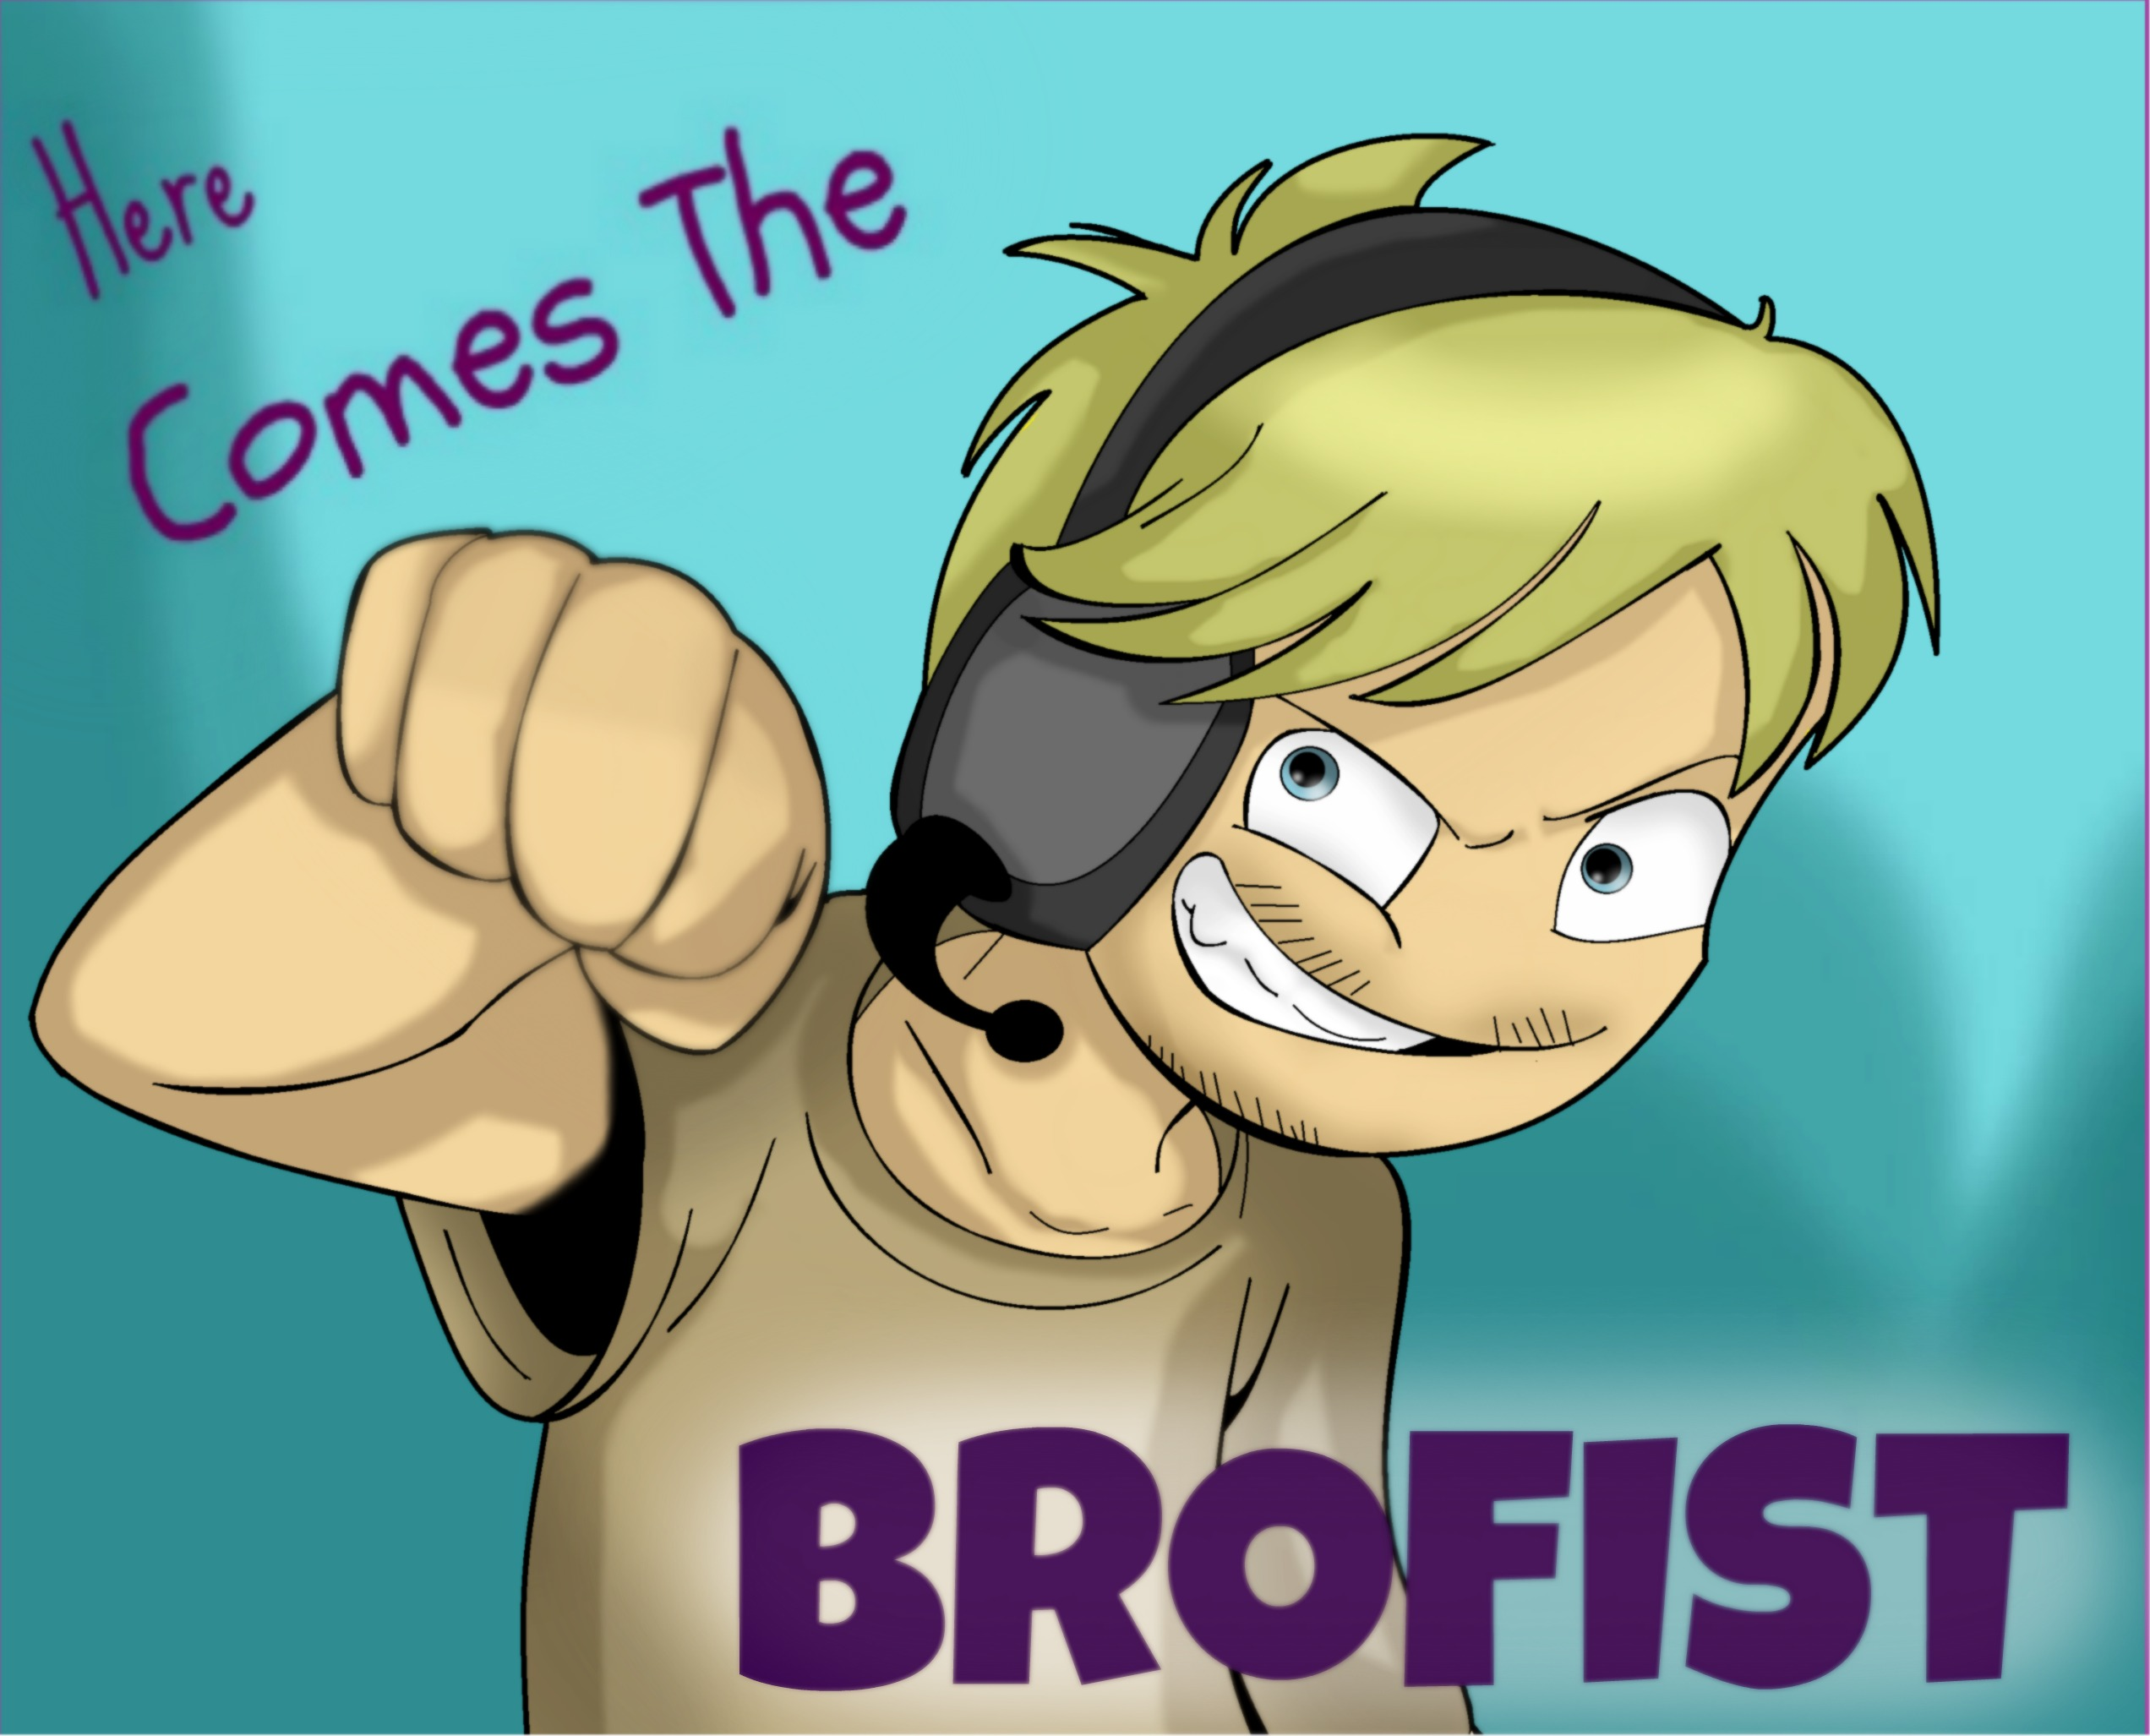 Here come the brofist !